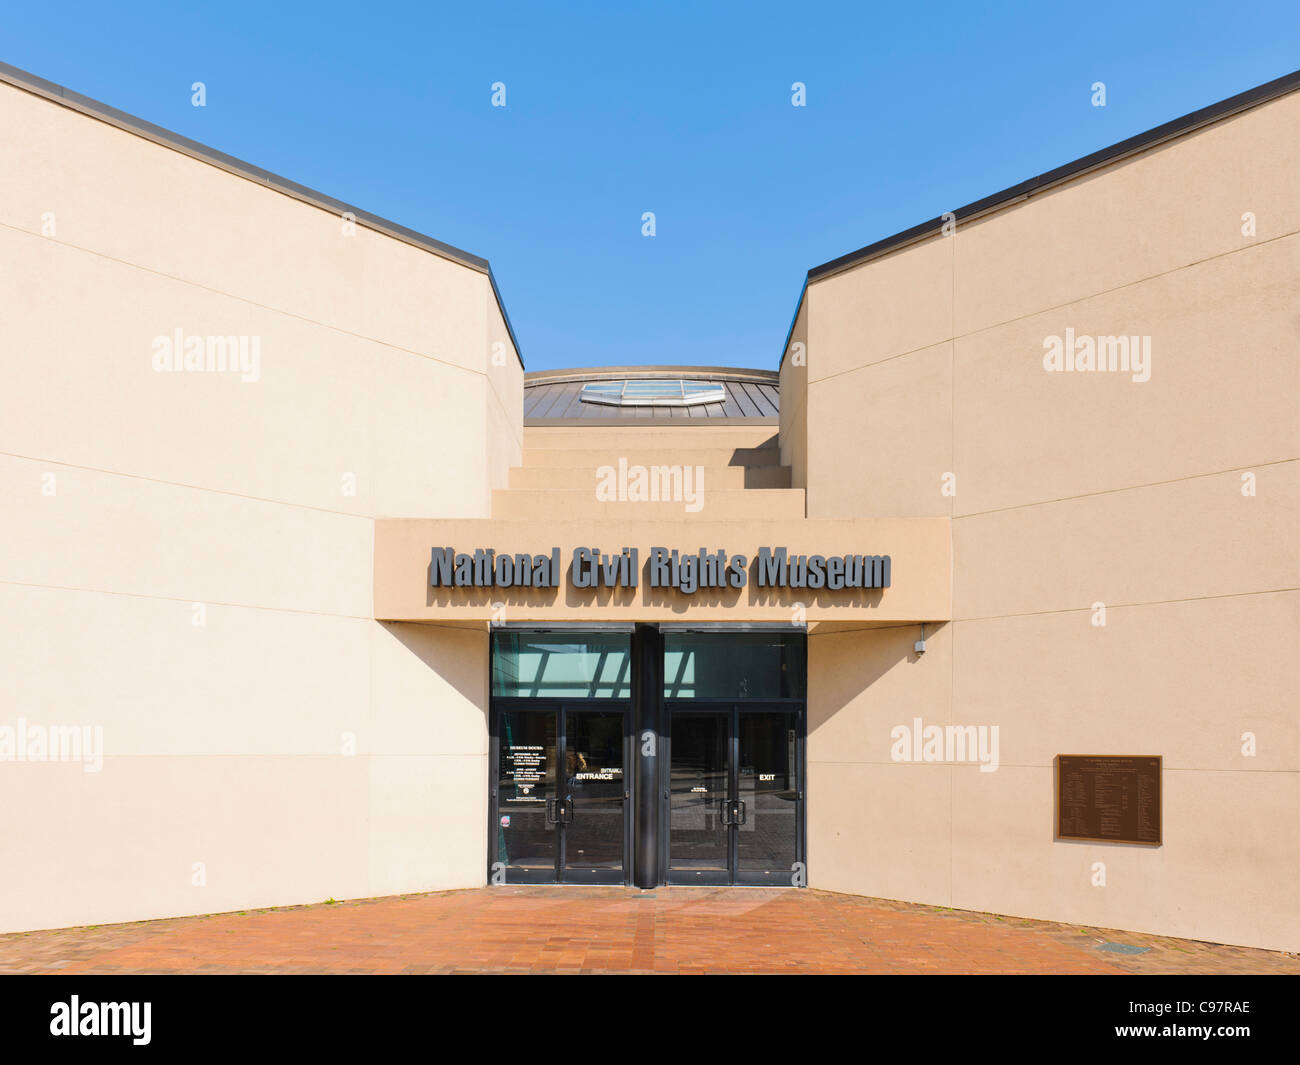 National Civil Rights Museum, Memphis Stock Photo